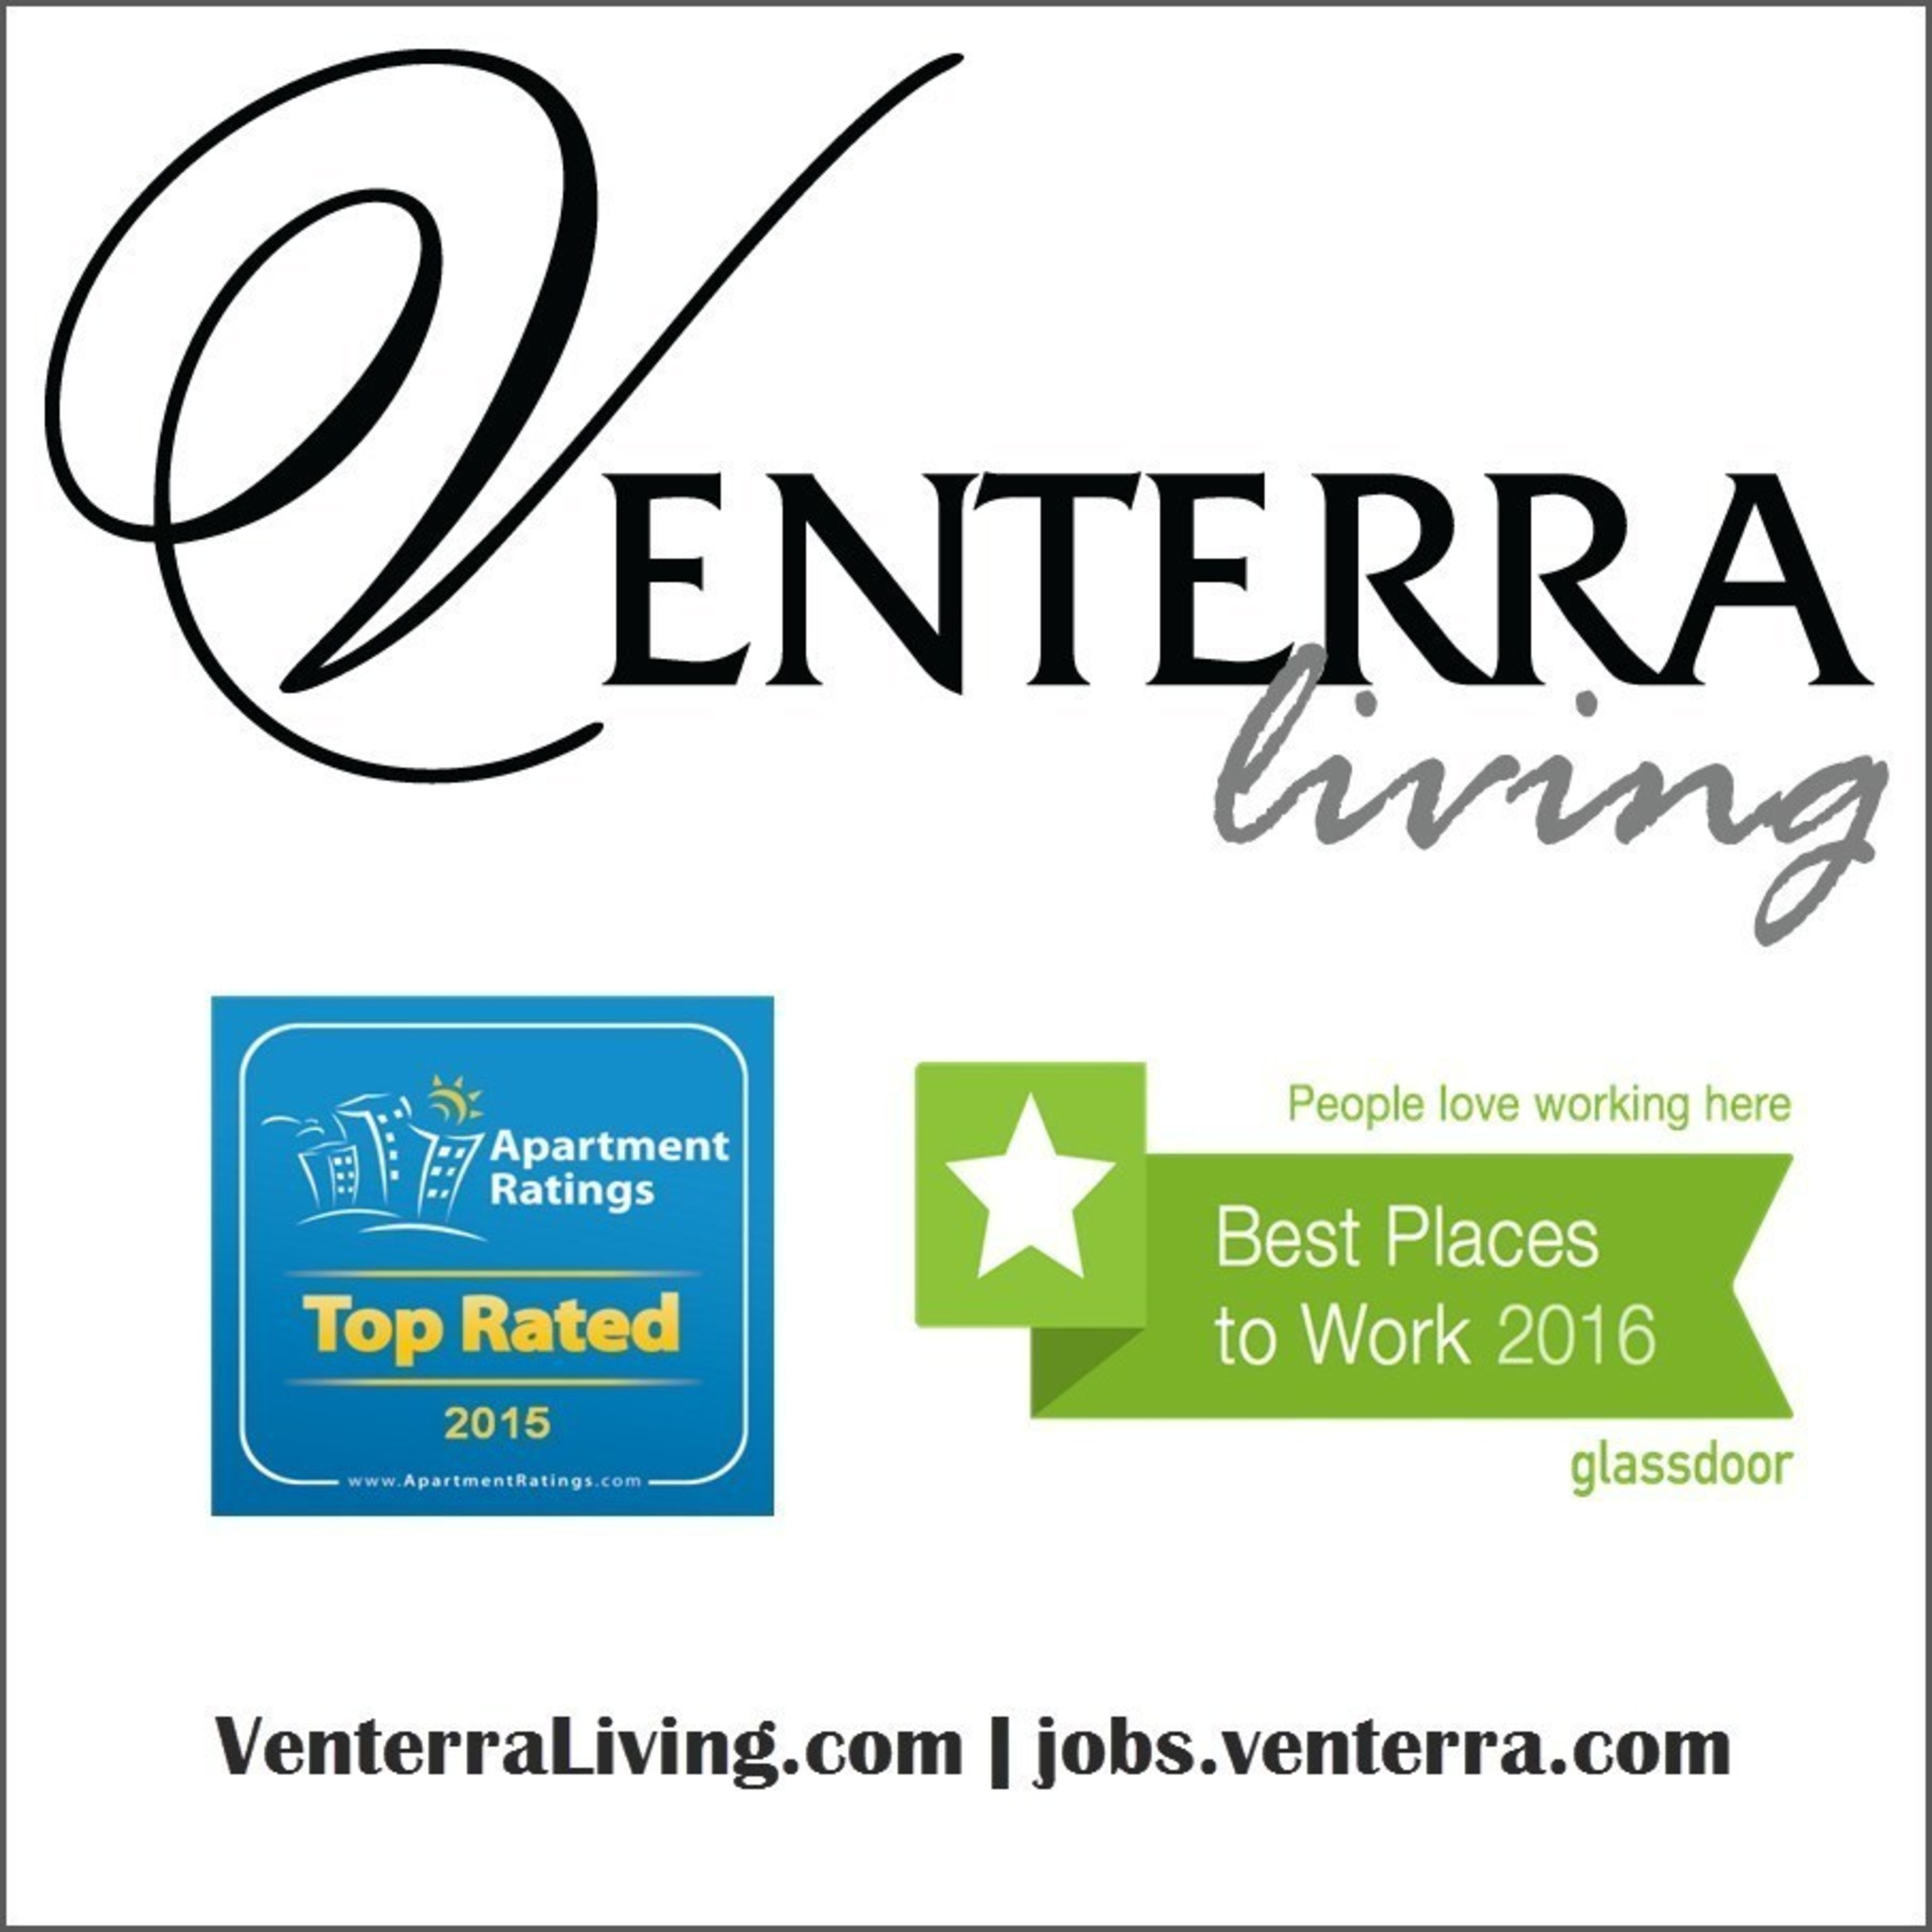 realty apartments receive top award from apartmentratings